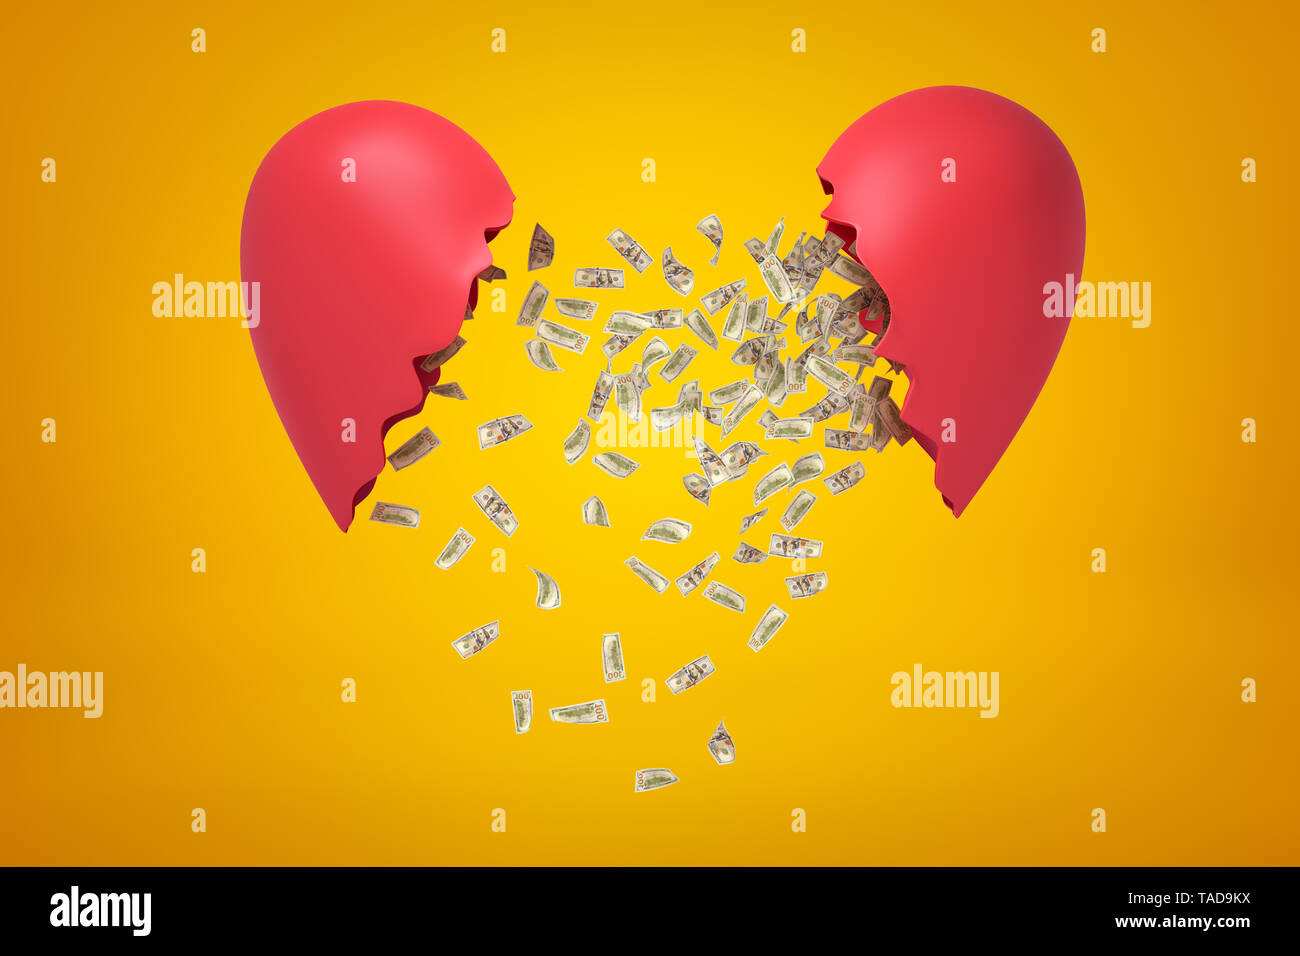 3d rendering of silver gear wheels falling between two red broken heart pieces on yellow background. Digital art. Objects and materials. Concept ideas - Stock Image